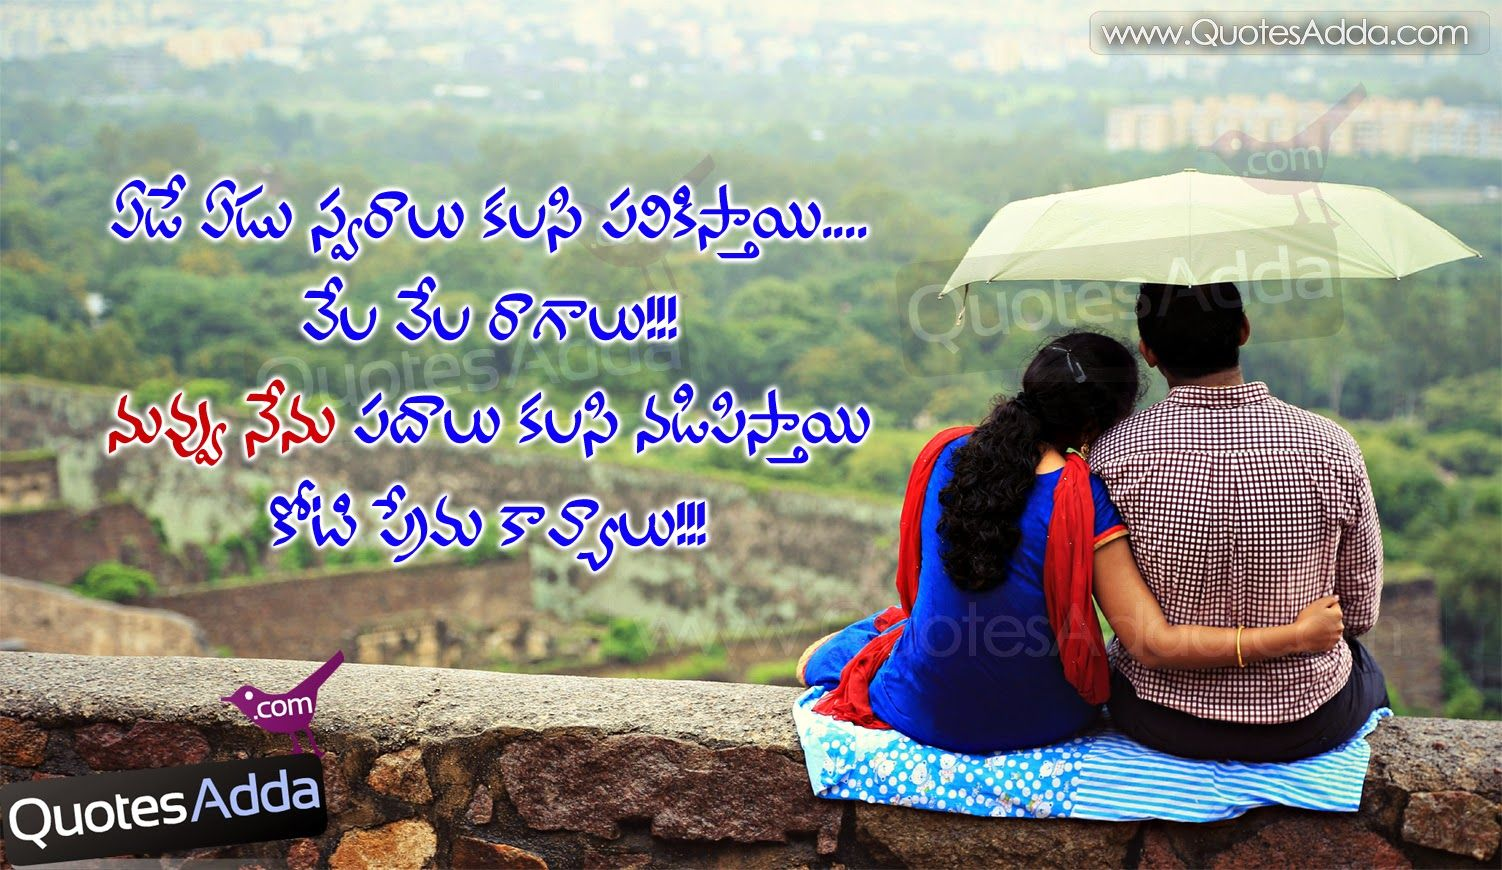 Telugu Love Quotes Glamorous Funny Love Proposal Quotes Best Telugu Beautiful Love Quotations